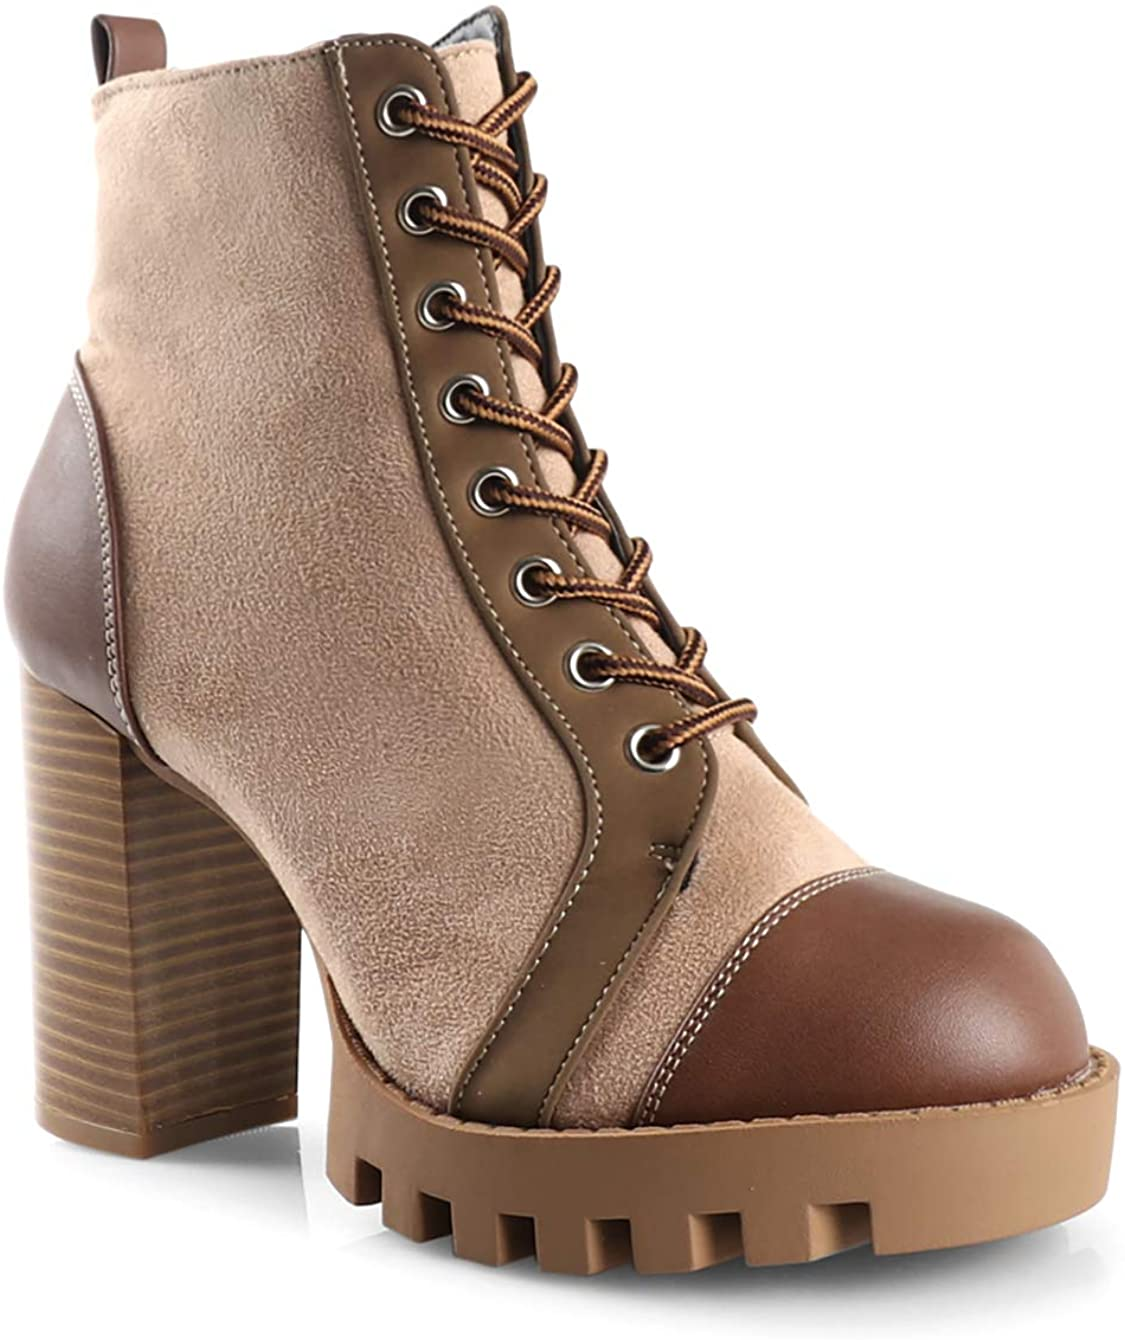 Women's Gloria Lug Sole Platform Chunky Lace up Ankle Bootie with Eyelets High Heel Boots